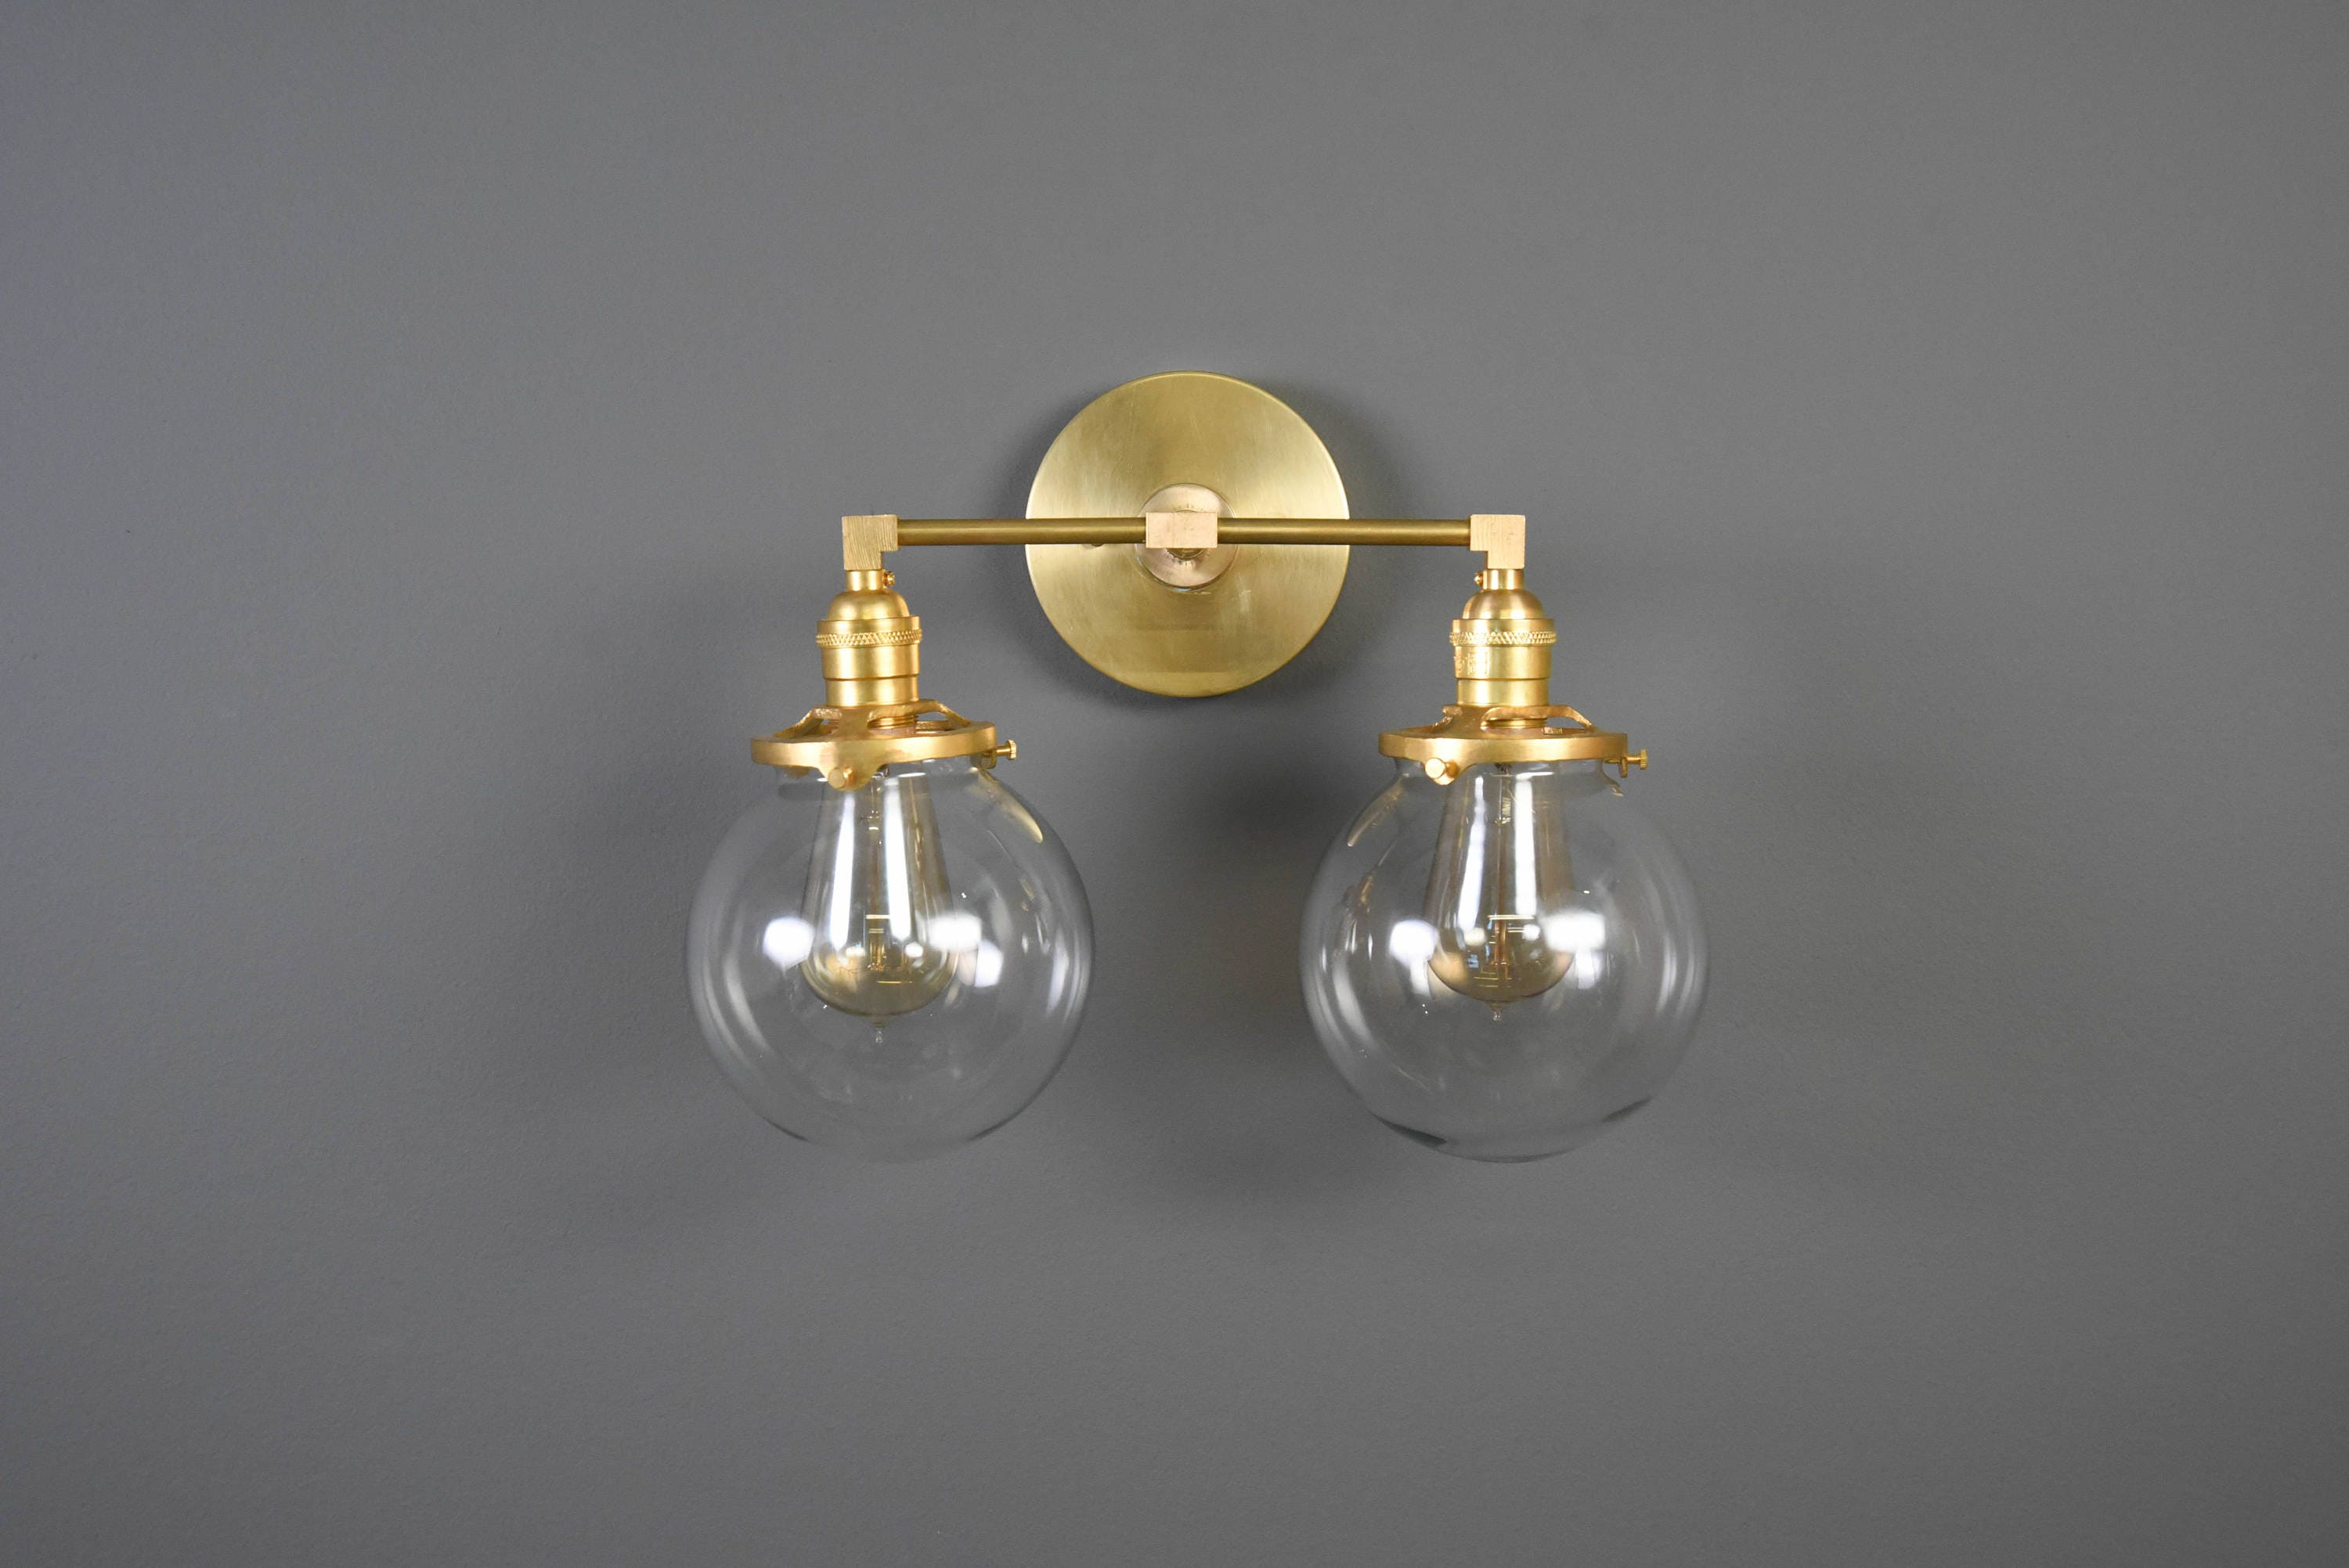 horizontally in bathroom triple mirrors delphine two bulb bulbs pin custom this brass made is glass for sconce home with anywhere raw your globe or vertically seven duel hanging perfect and